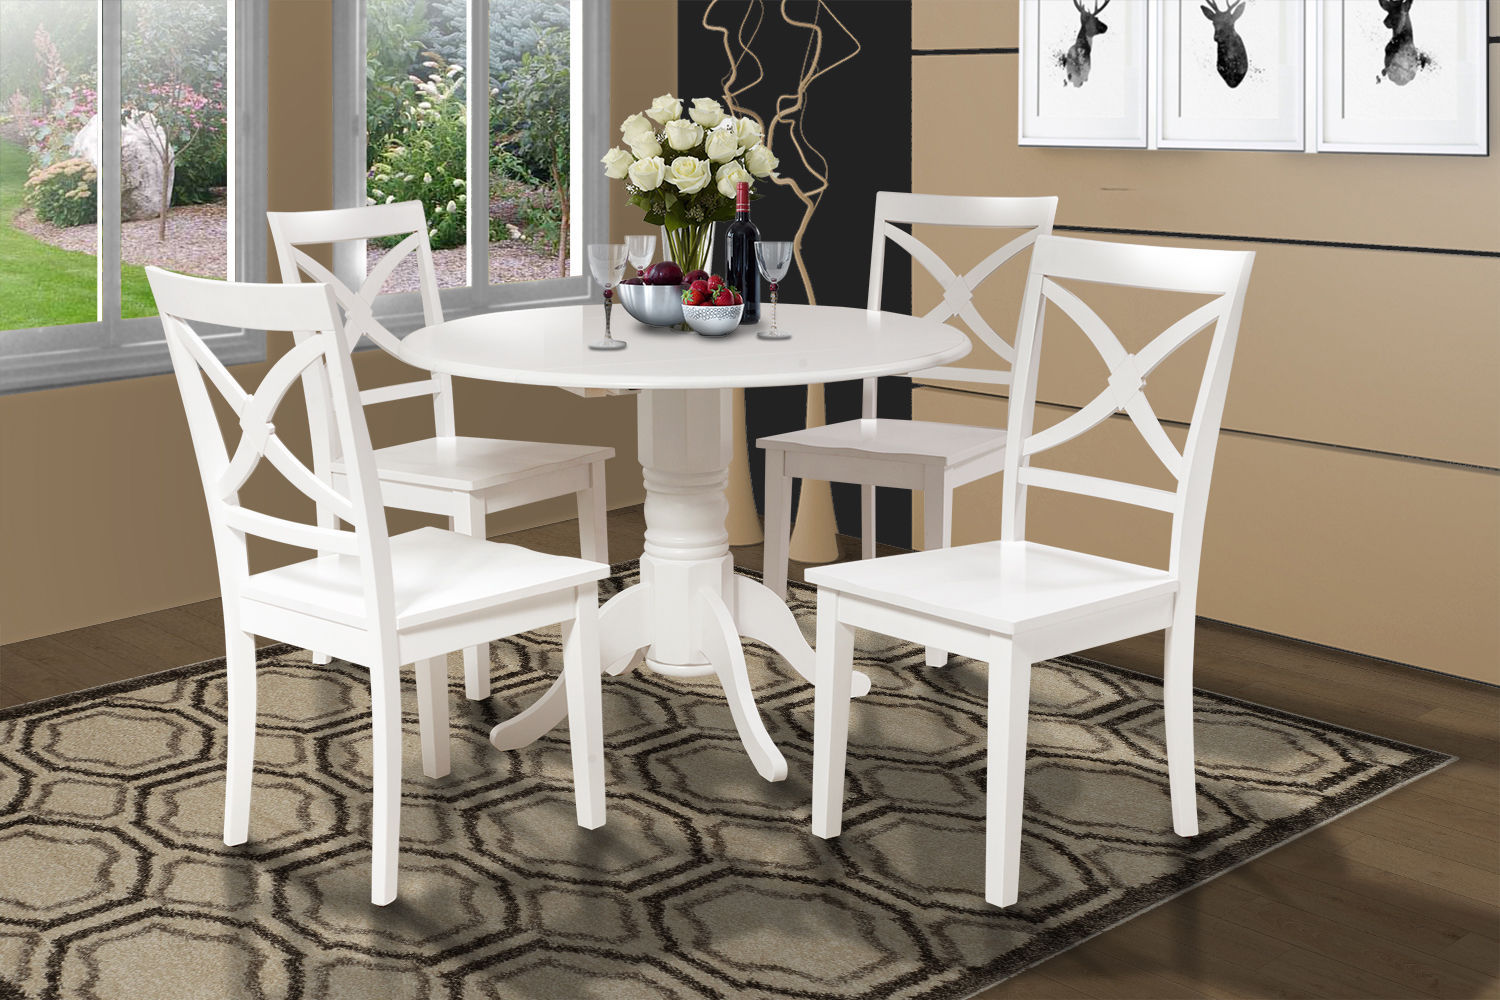 SET OF 2 KITCHEN DINING SIDE CHAIRS w/ WOODEN SEAT IN  WHITE FINISH